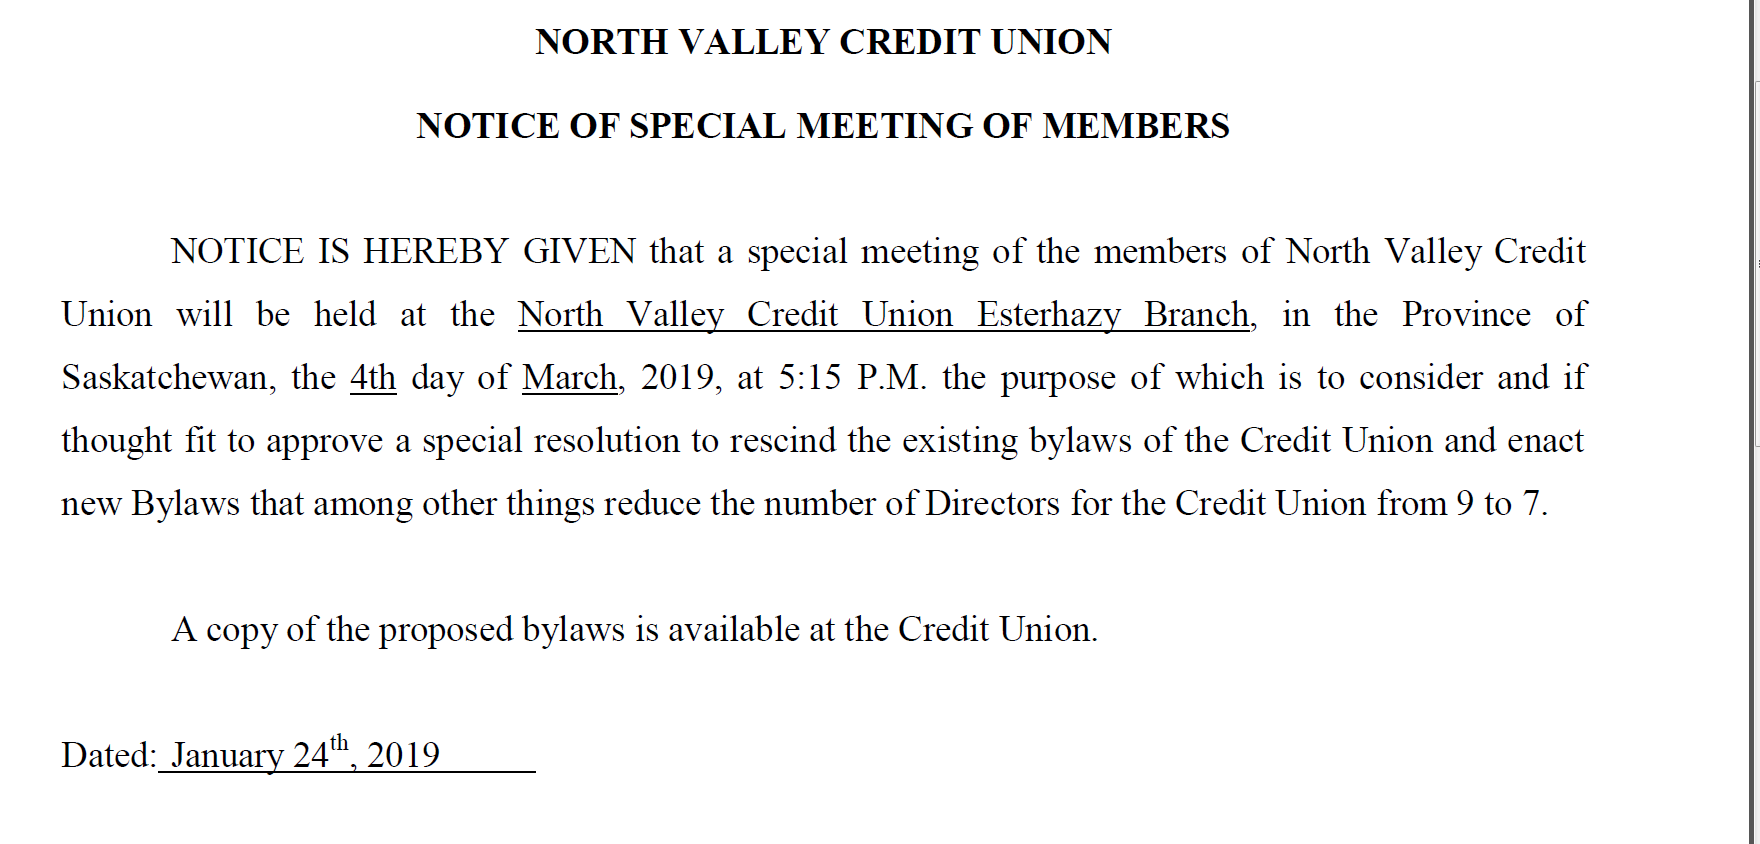 Notice of Special Meeting